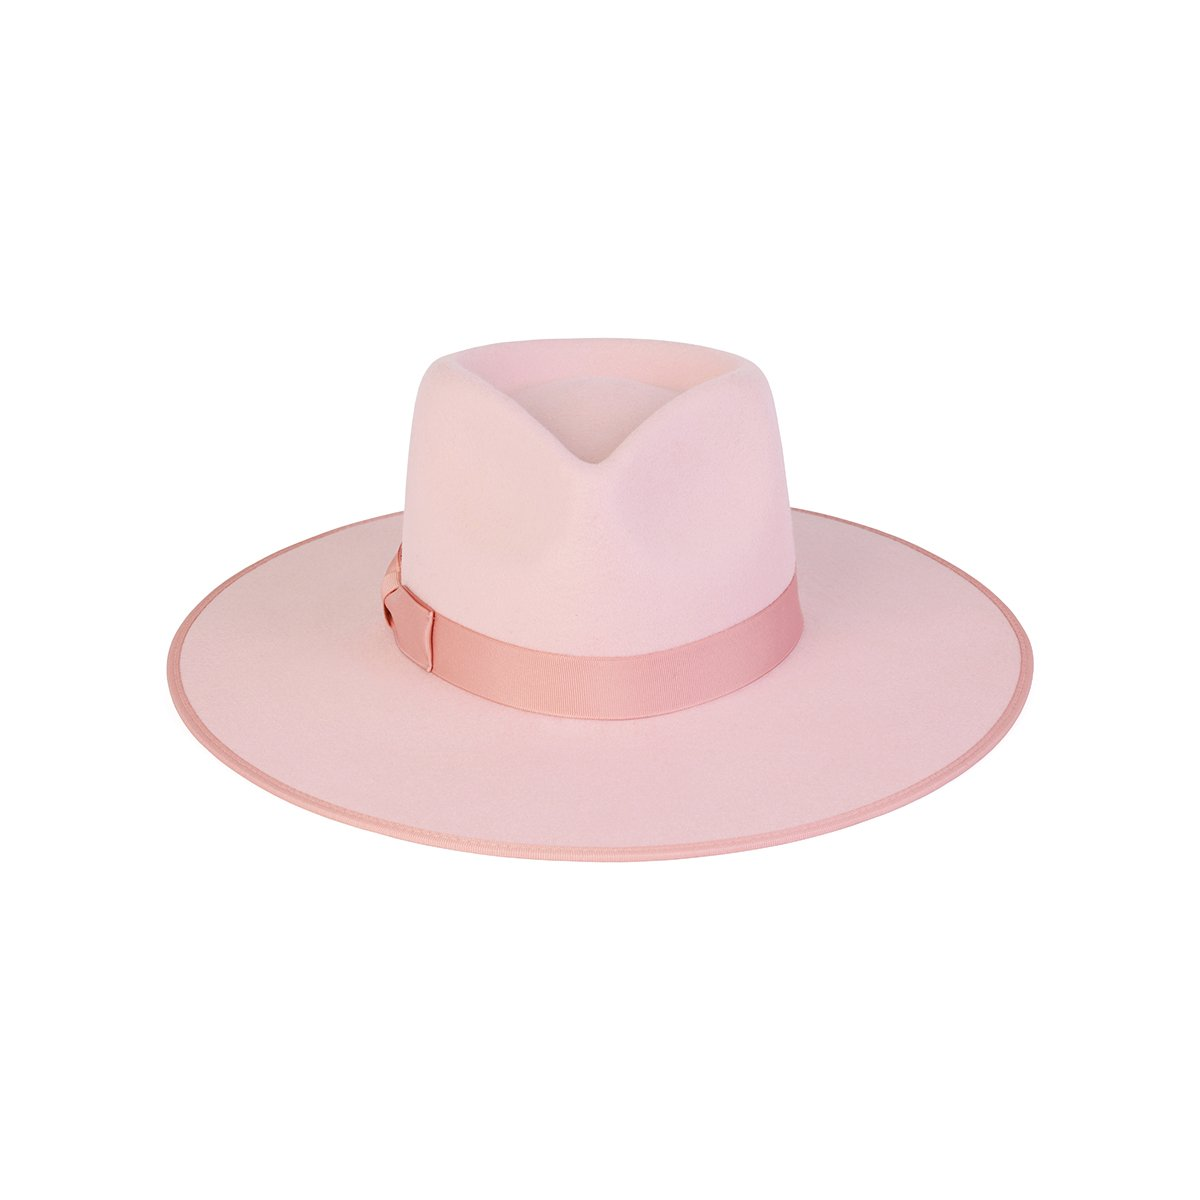 Load image into Gallery viewer, Stardust Rancher | Lack of Color - Women's Hats & Accessories